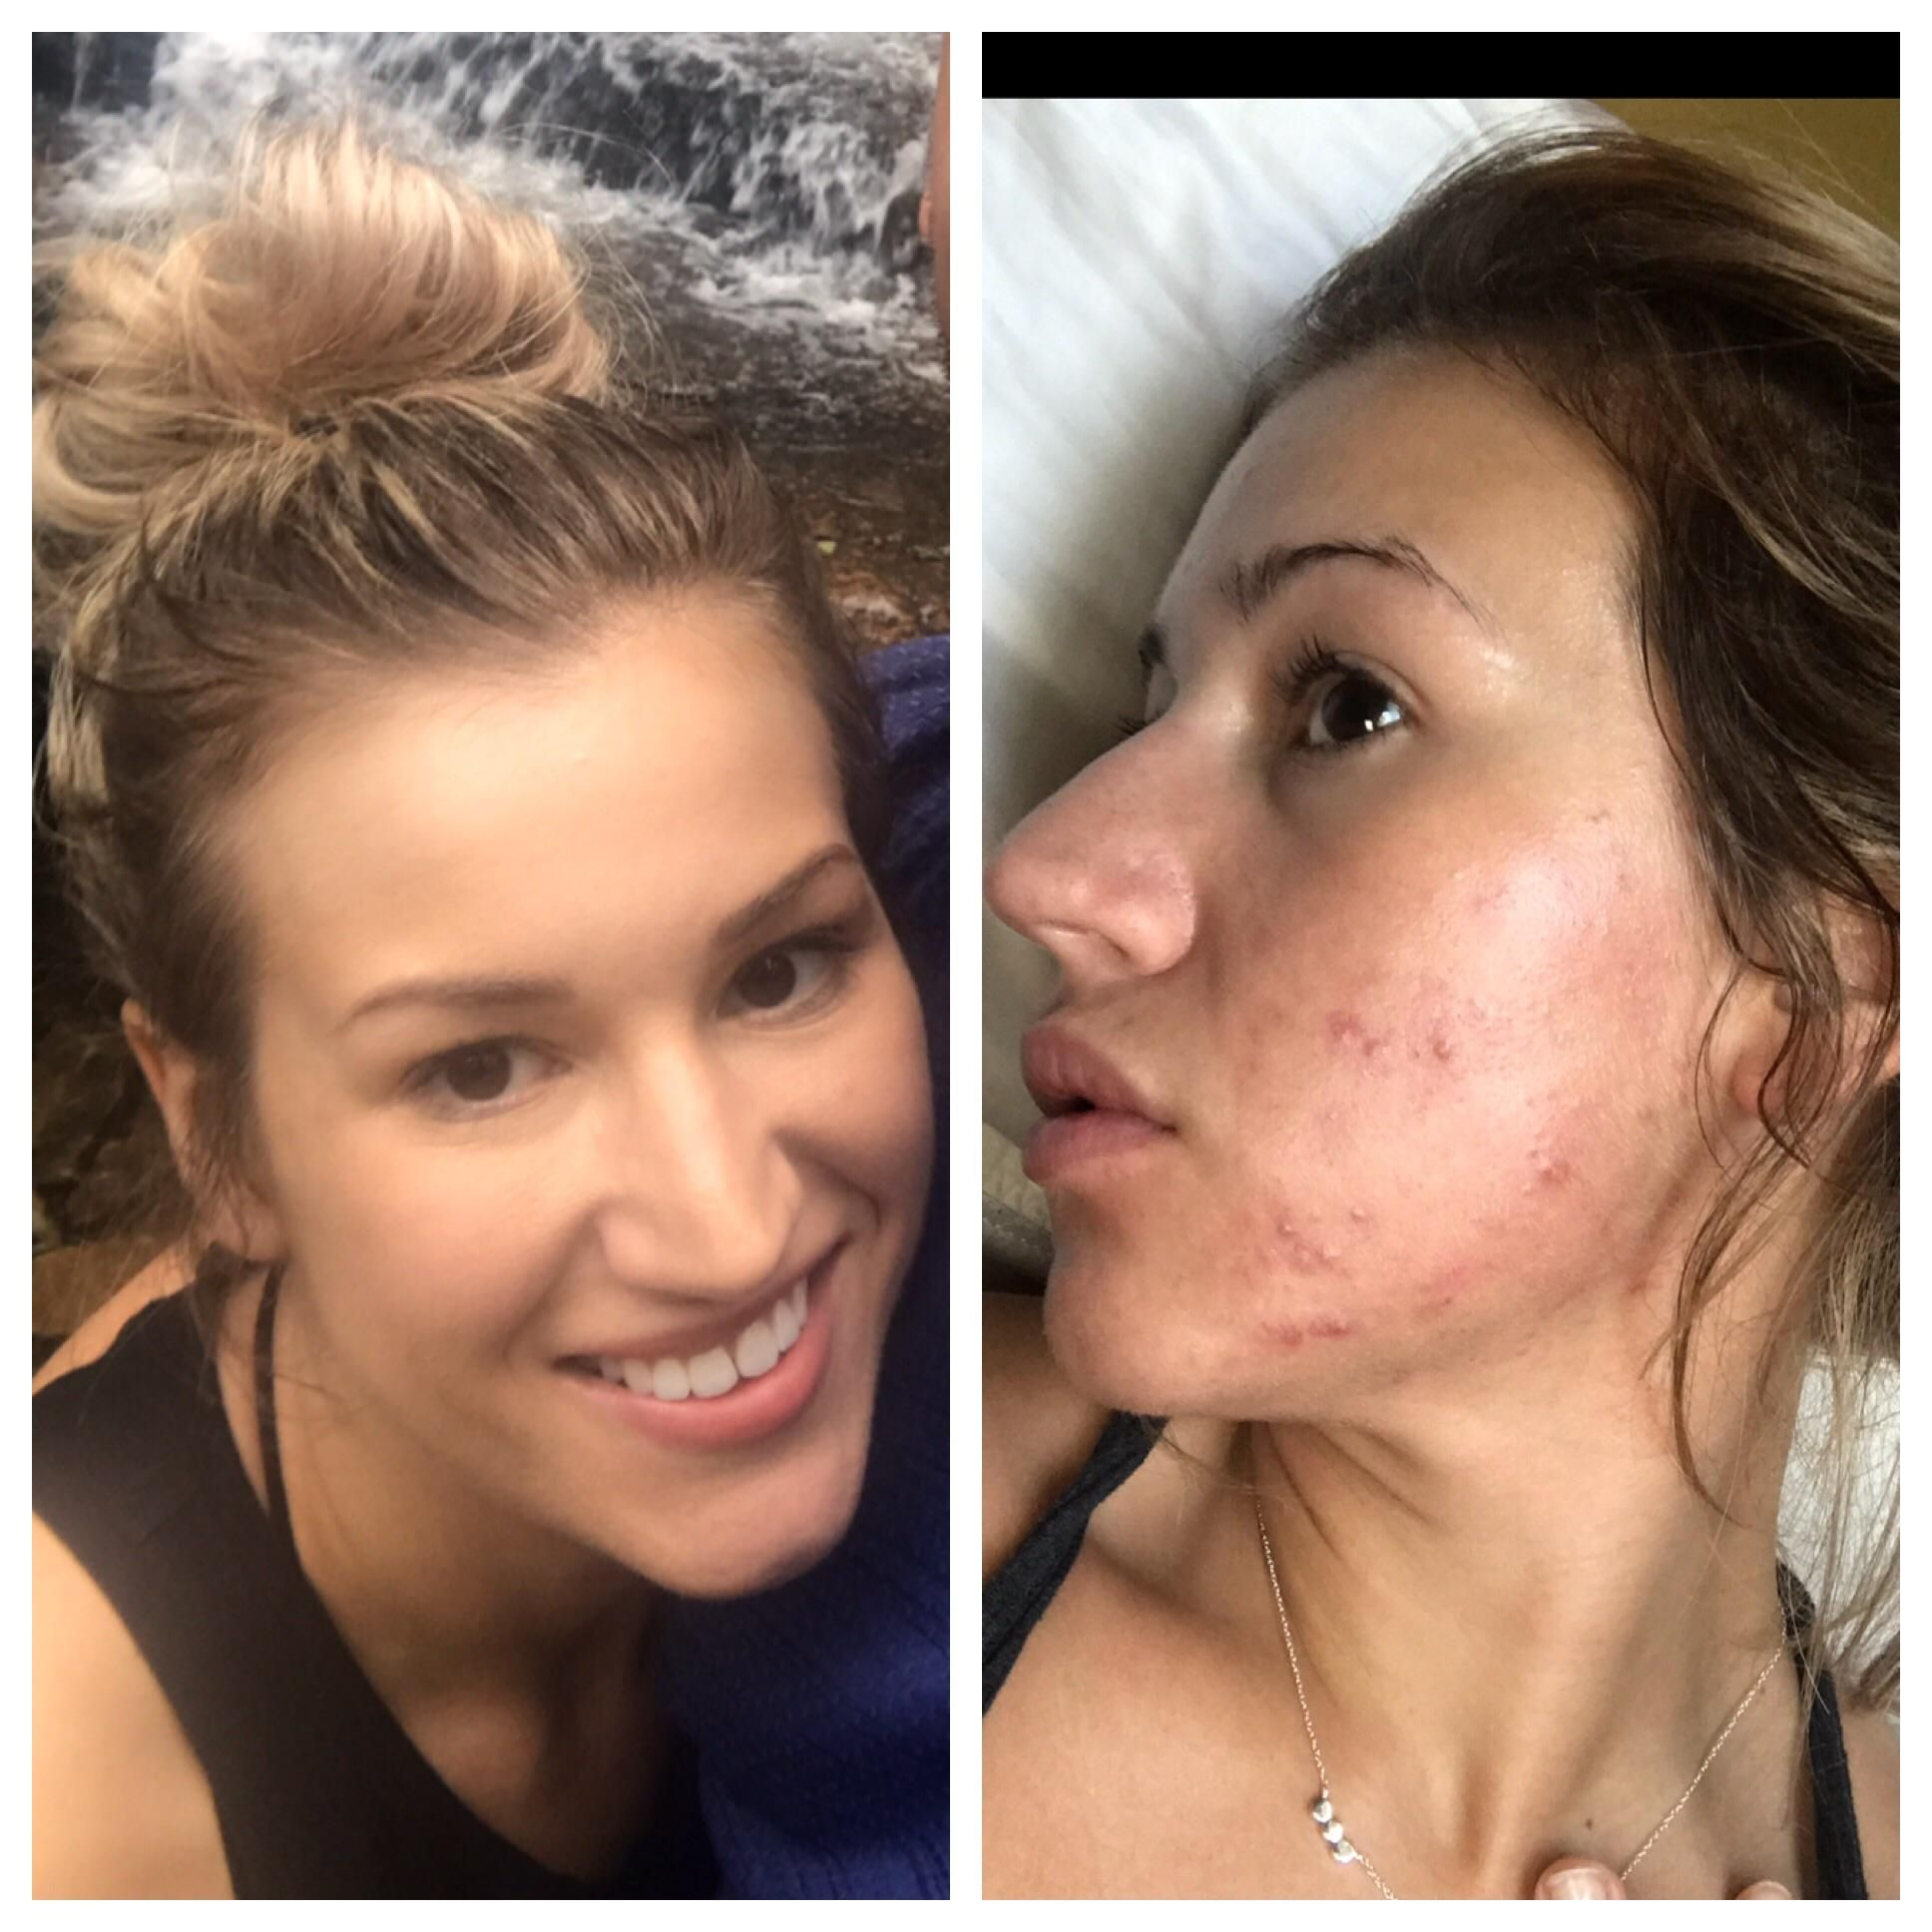 Acne Fungal Acne Malassezia Has Destroyed My Skin May Gt November Suggestions Welcome Acne Skin Make Up